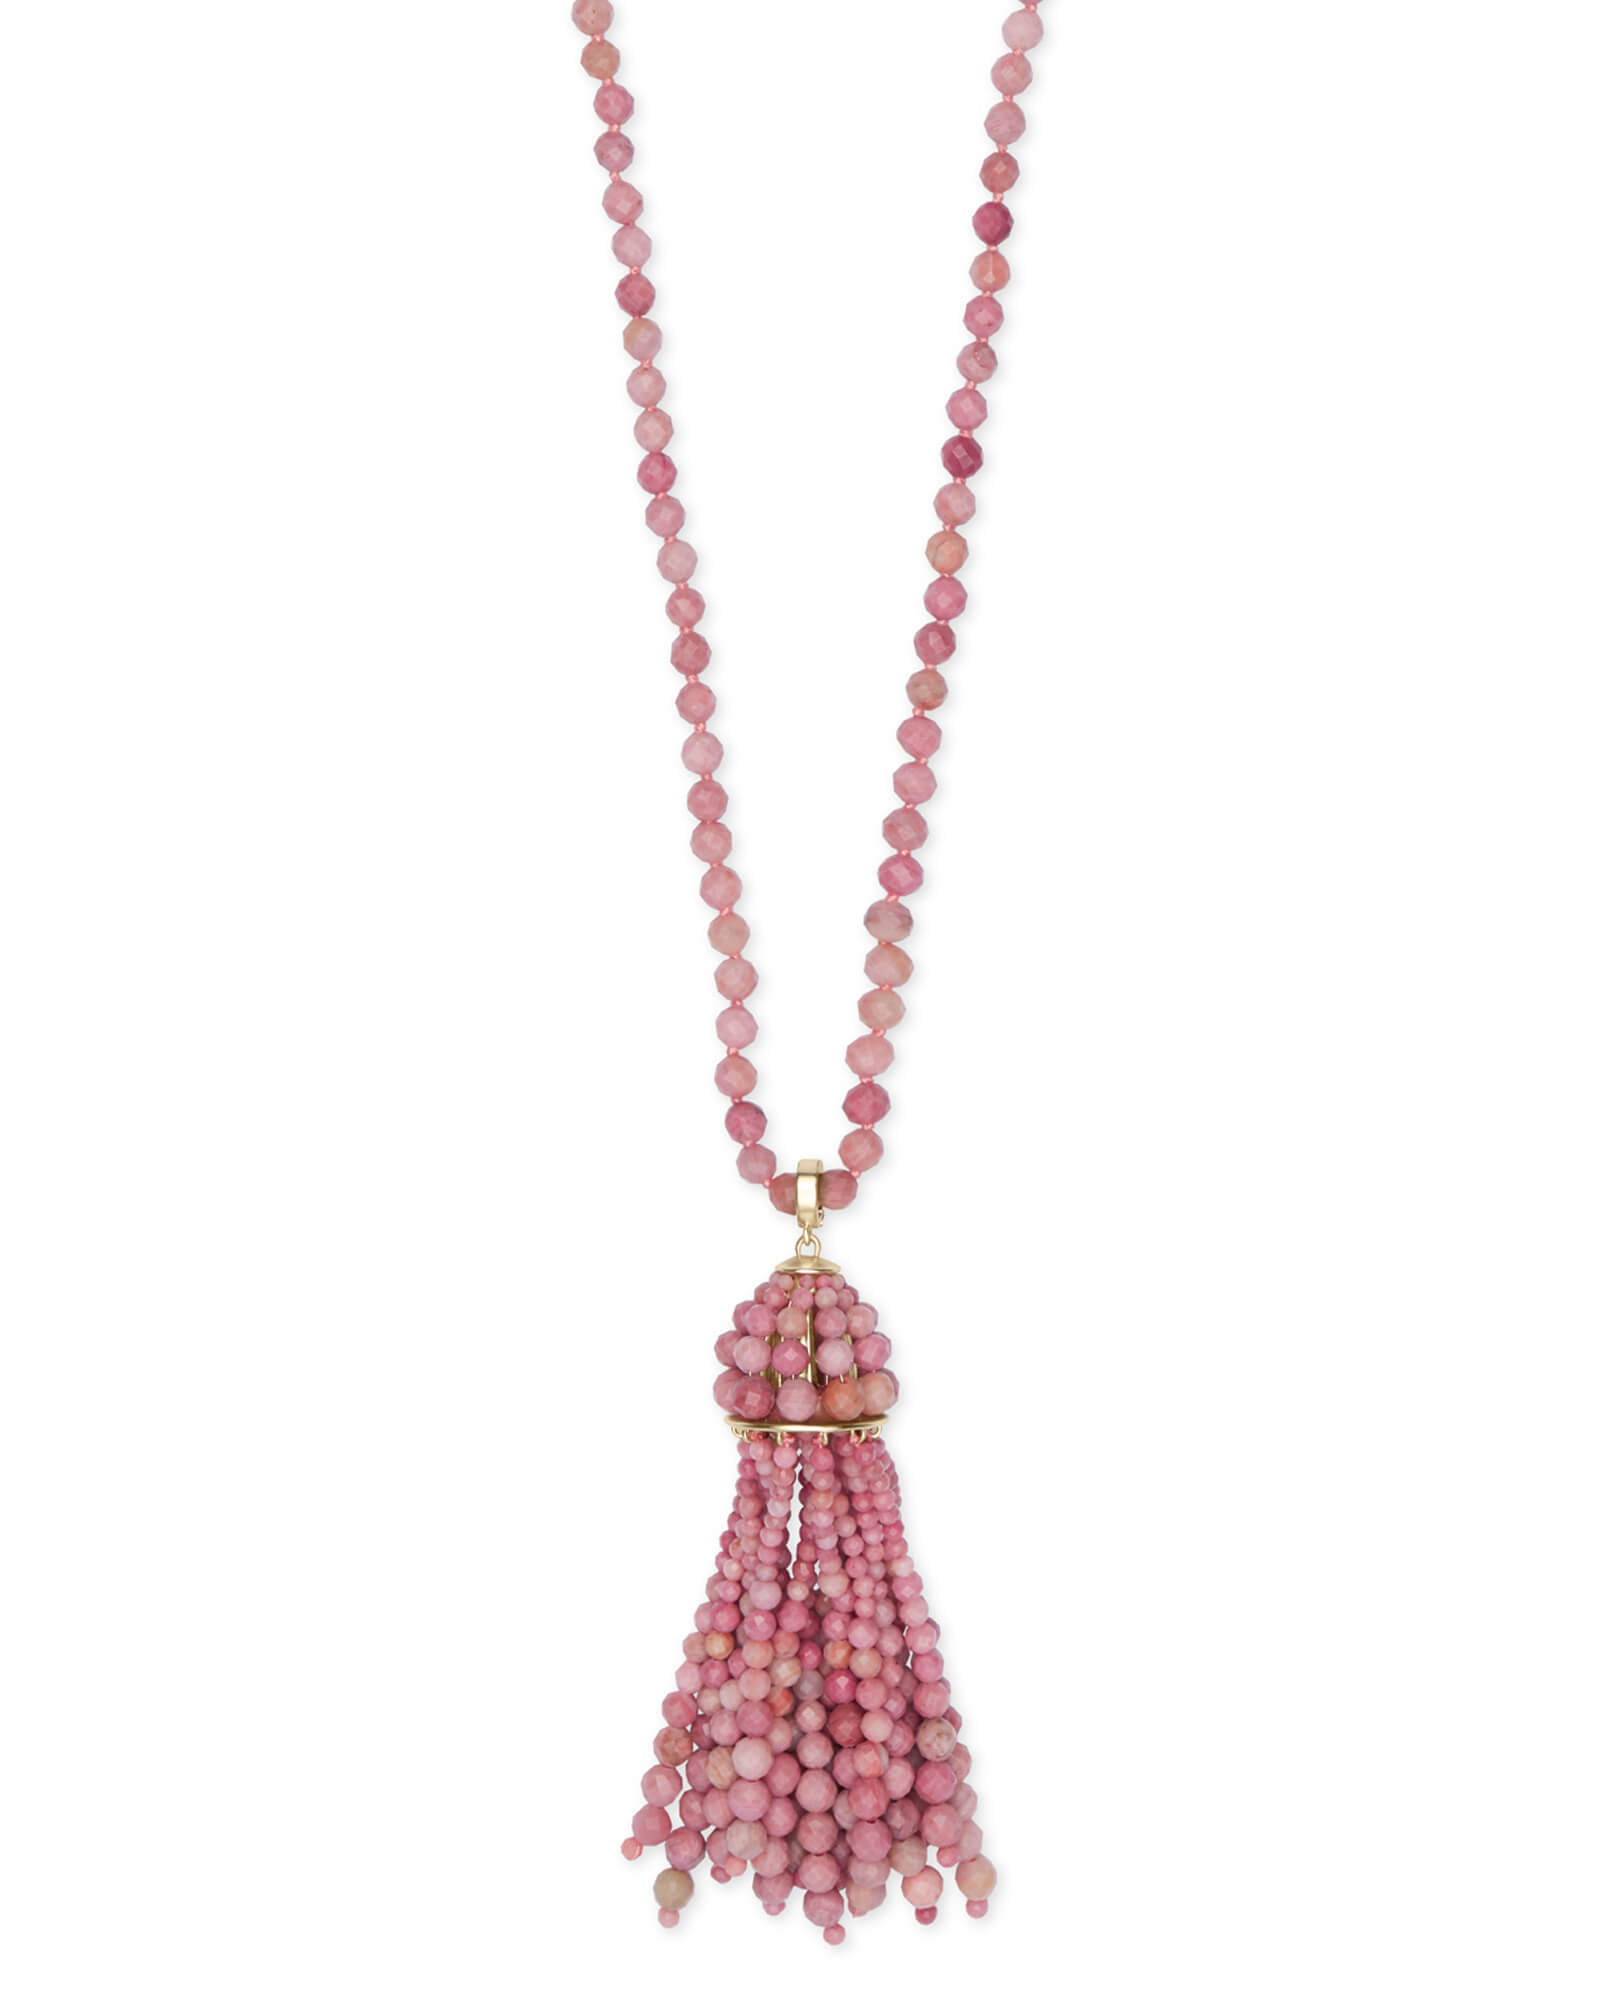 Sylvia Gold Long Pendant Necklace in Pink Rhodonite